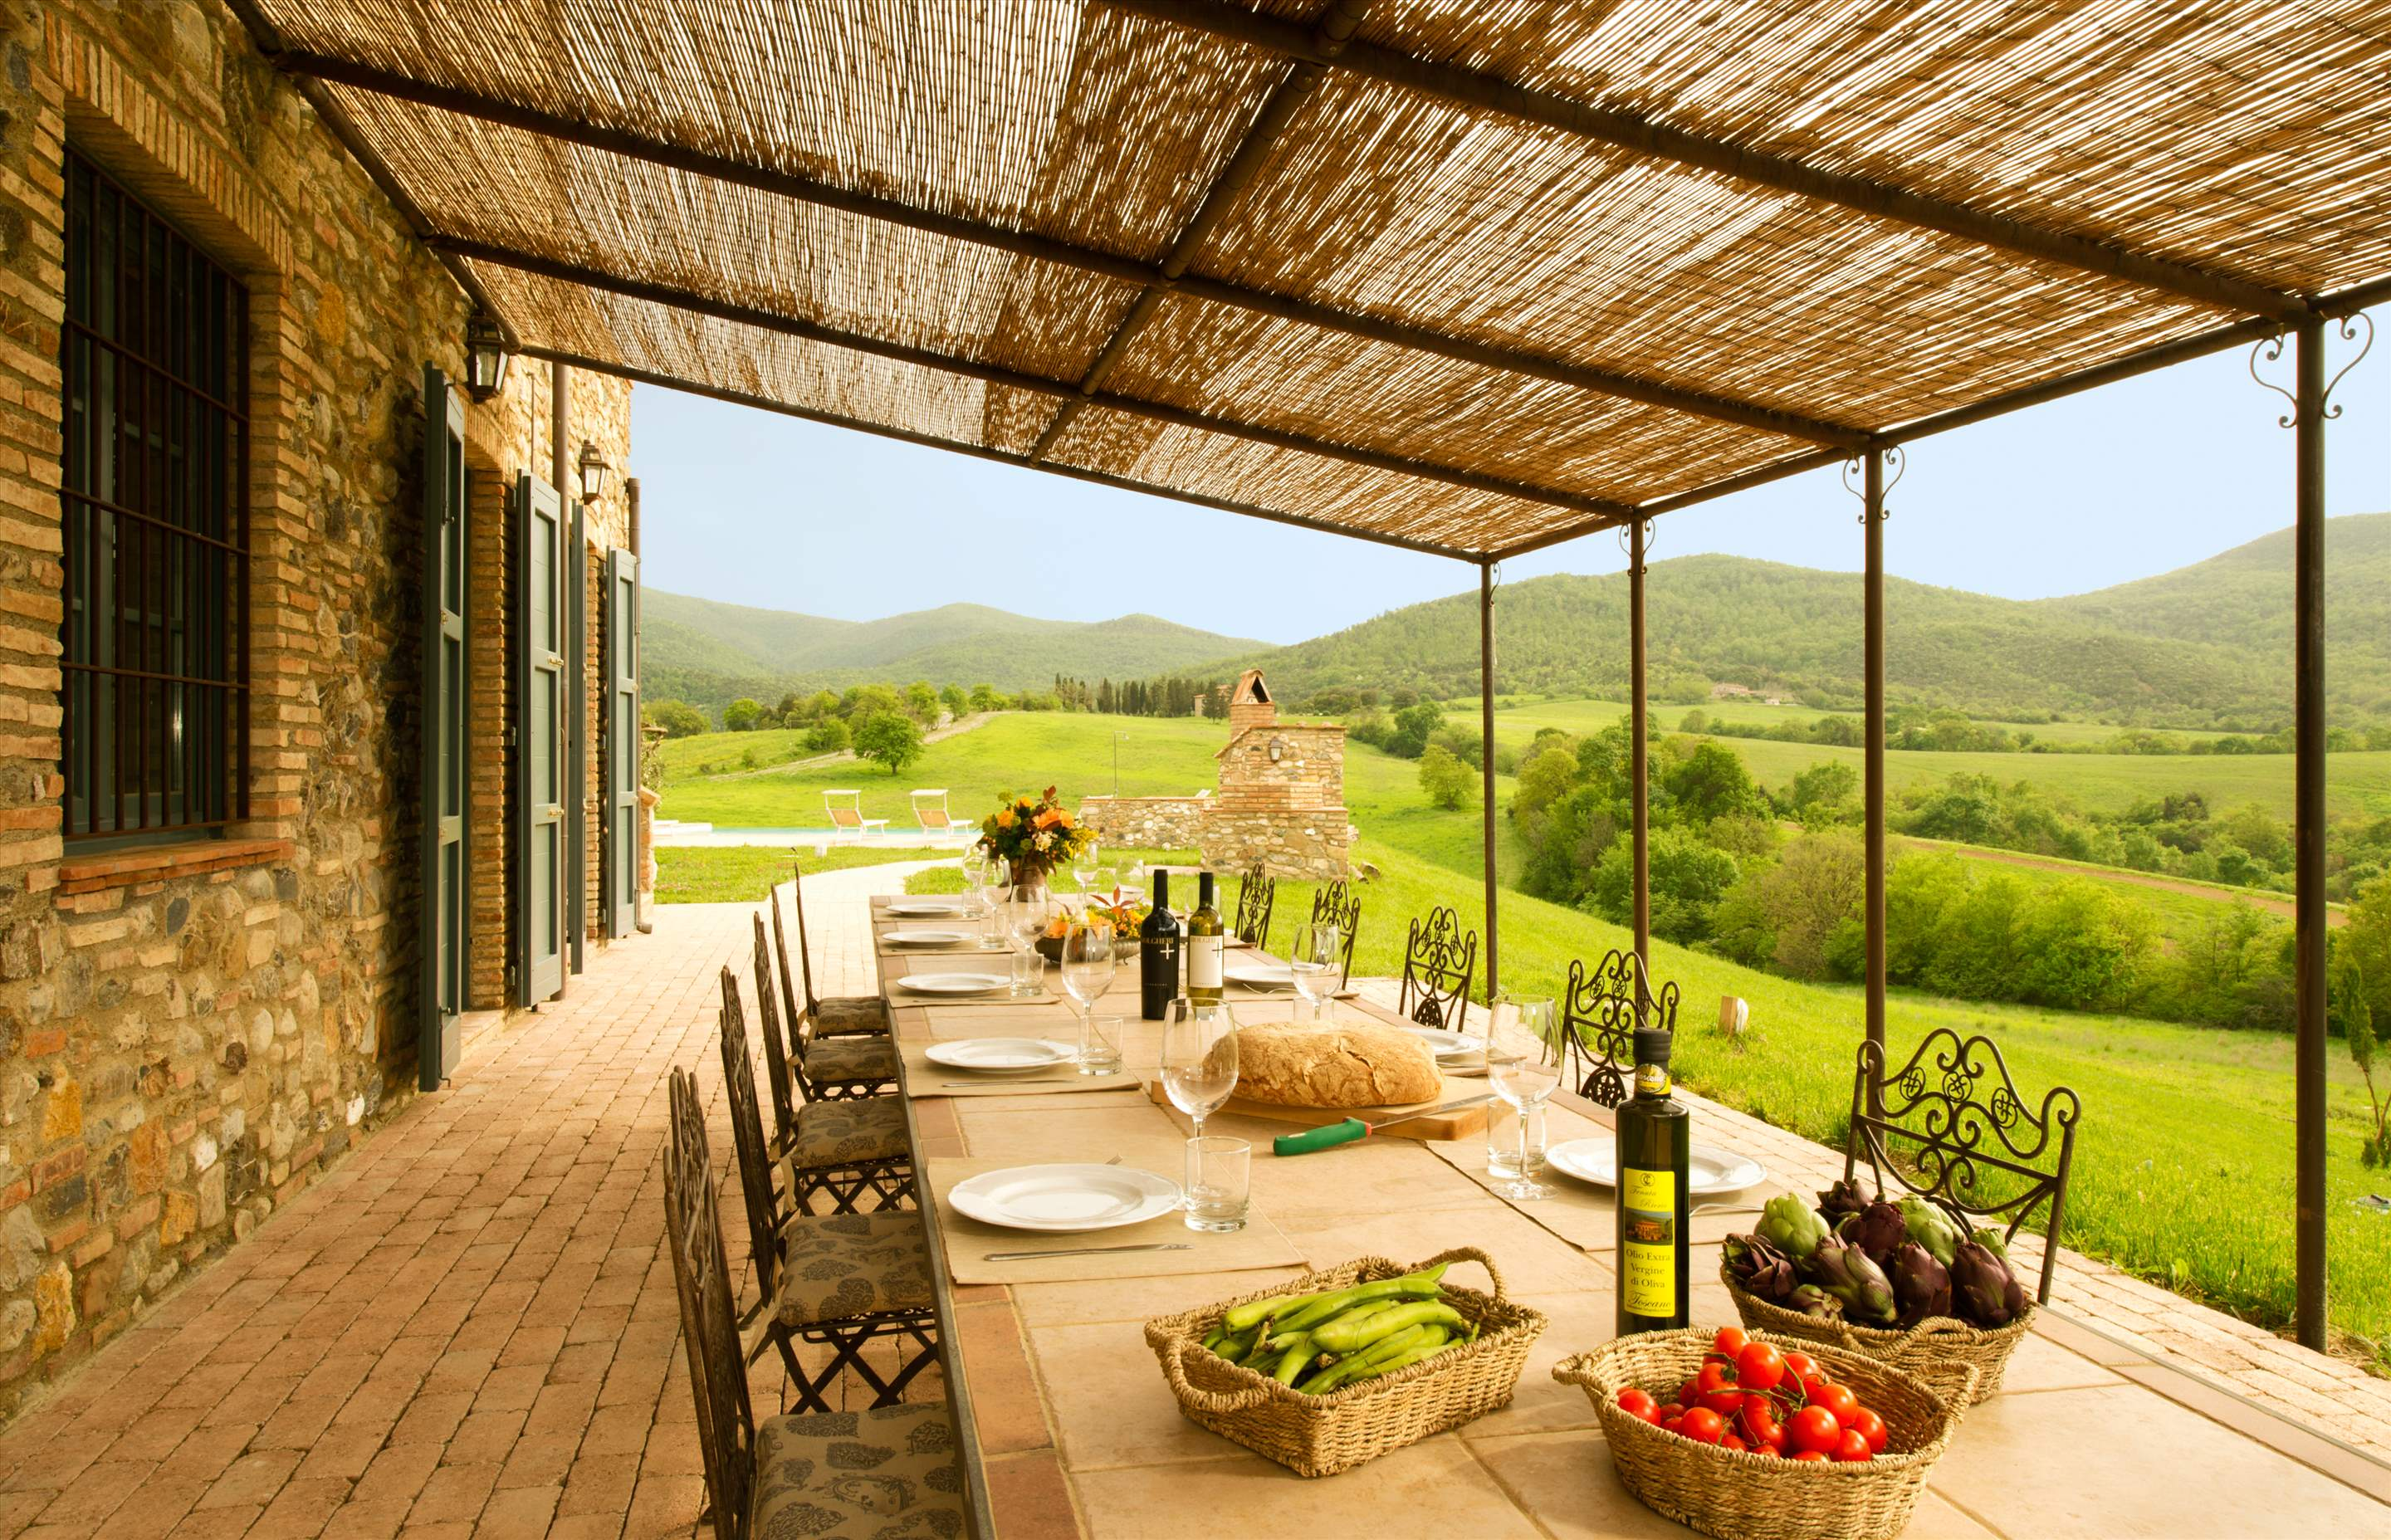 Podere Di Collina, Villa & Apts, 8 bedroom villa in Tuscany Coast, Tuscany Photo #16